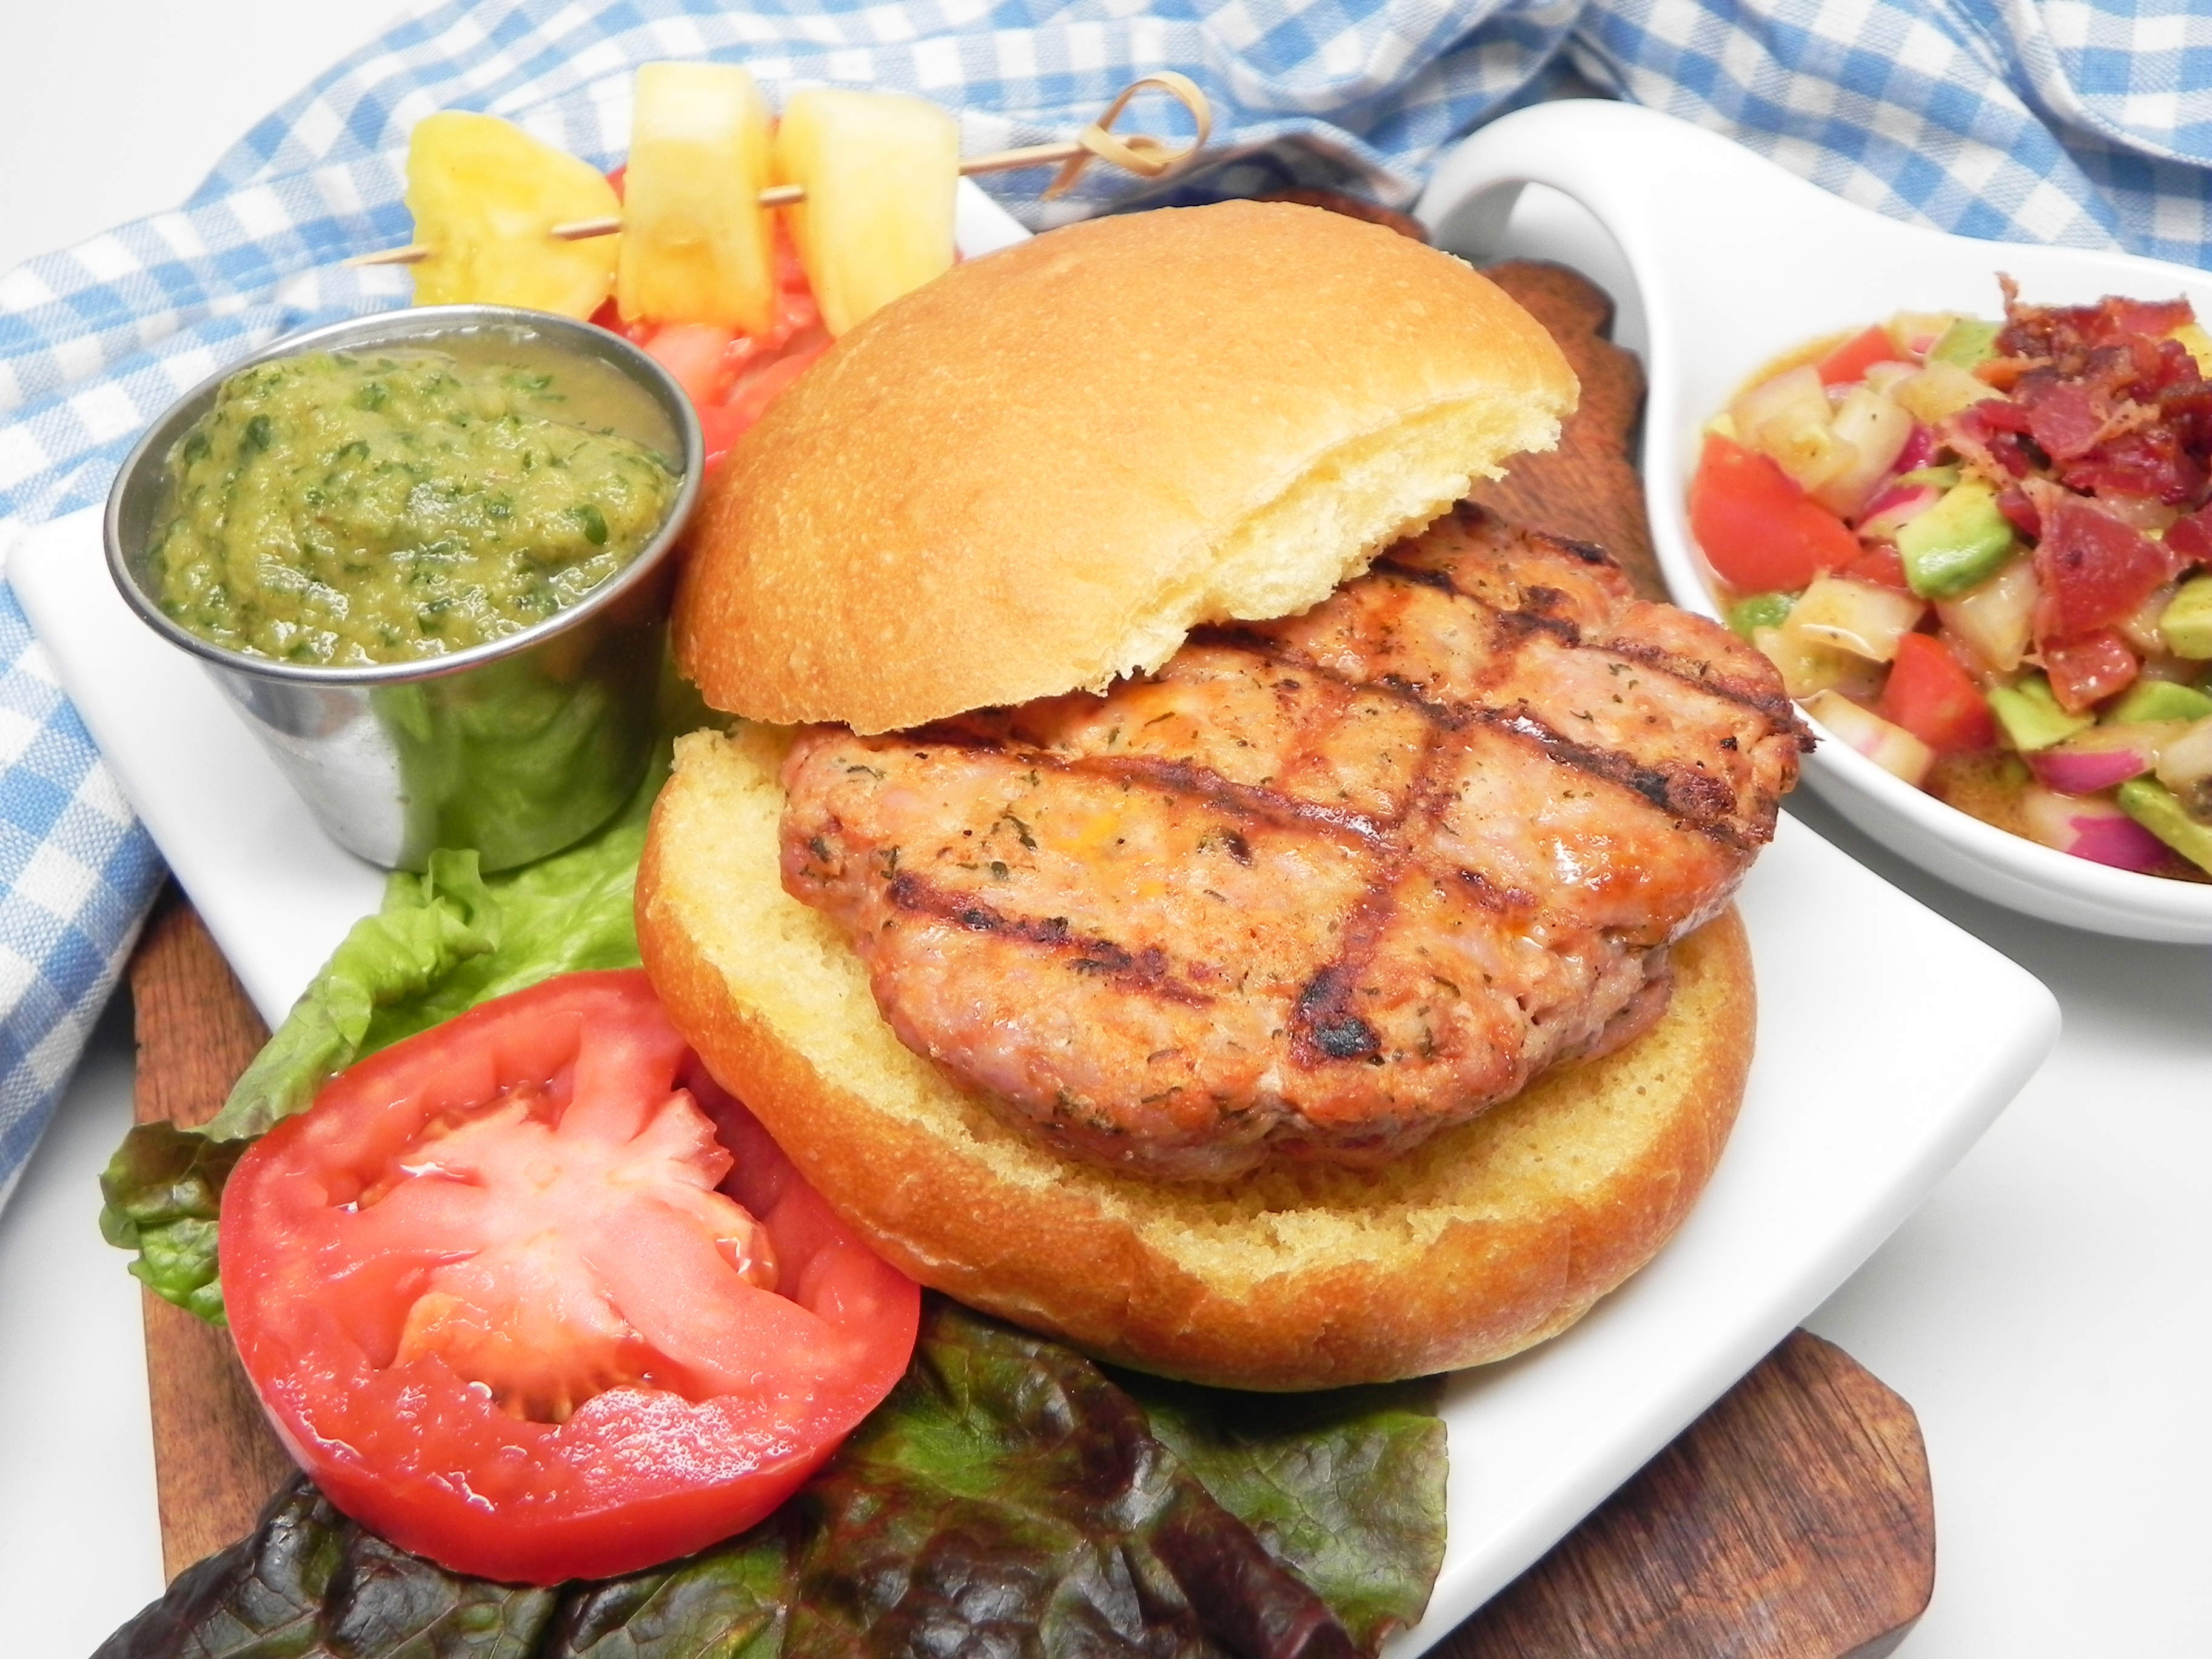 Grilled Pork Burgers with Pineapple Salsa image